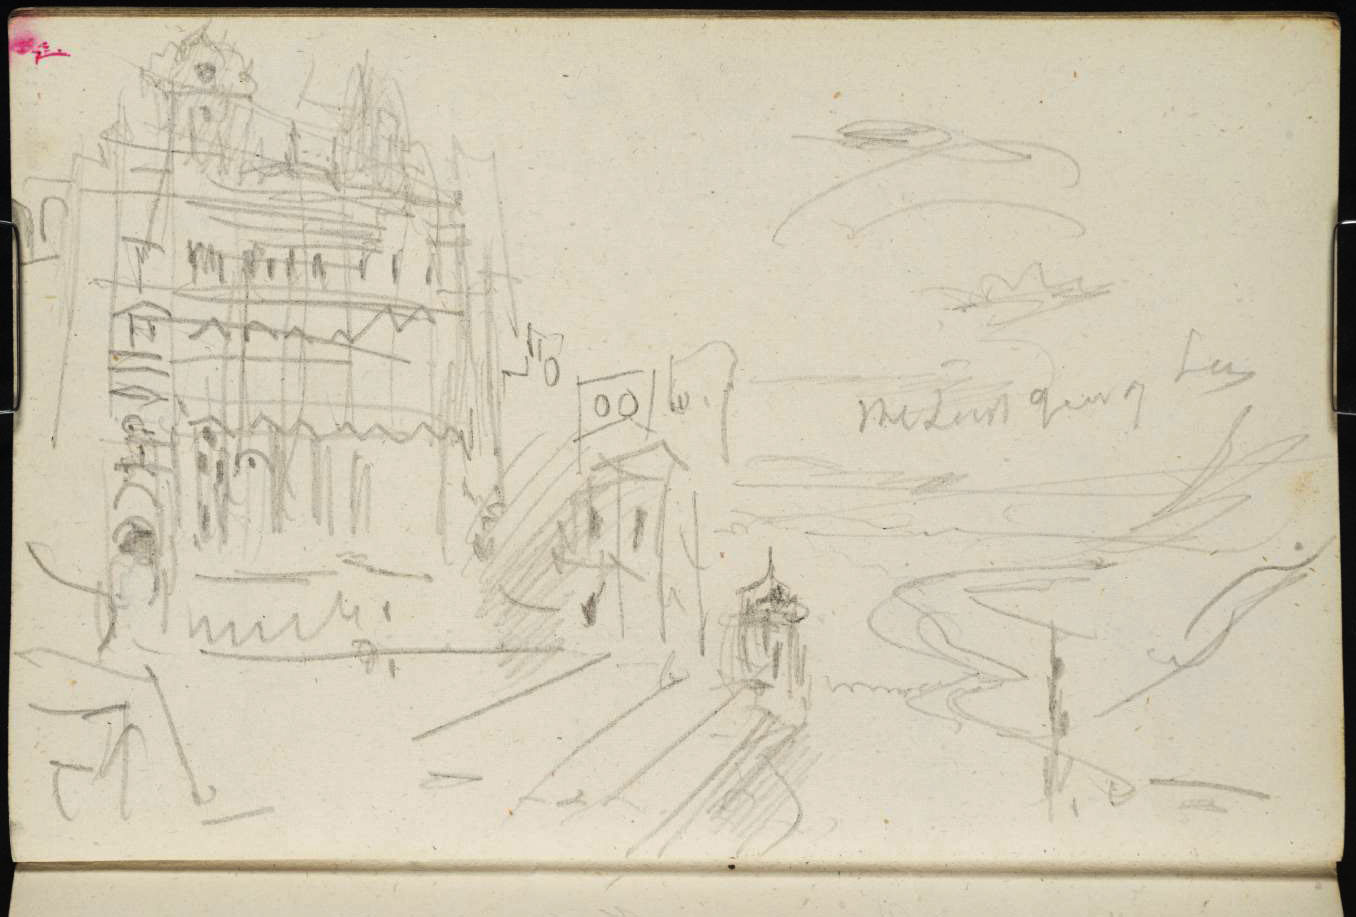 J M W Turner Heidelberg Castle: on the North Terrace, looking west at sunset, 1844 Graphite on paper, page size 109 x 170 mm From the Spires and Heidelberg sketchbook, Tate, London, D29806; Turner Bequest CCXCVII 18a as 'Heidelberg Castle: The Friedrich Building and Altan, and View Westwards down the Neckar Photo courtesy of Tate Here Turner is leaning out of the eastern turret looking west, noting 'the last gleam of the sun'. To view this image in Tate's own catalogue of the Turner bequest, click on the following link, and use your browser's 'back' button to return to this page. http://www.tate.org.uk/art/artworks/turner-heidelberg-castle-the-friedrich-building-and-altan-and-view-westwards-down-the-d29806